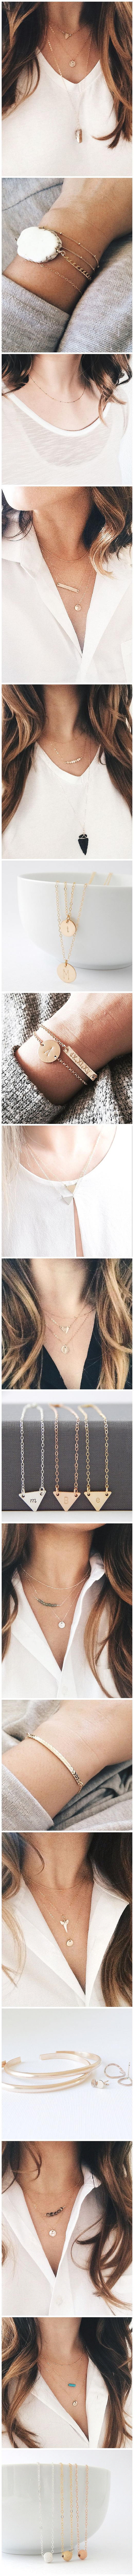 Handmade, minimalist layering jewelry by Barberry + Lace | www.barberryandlace.com